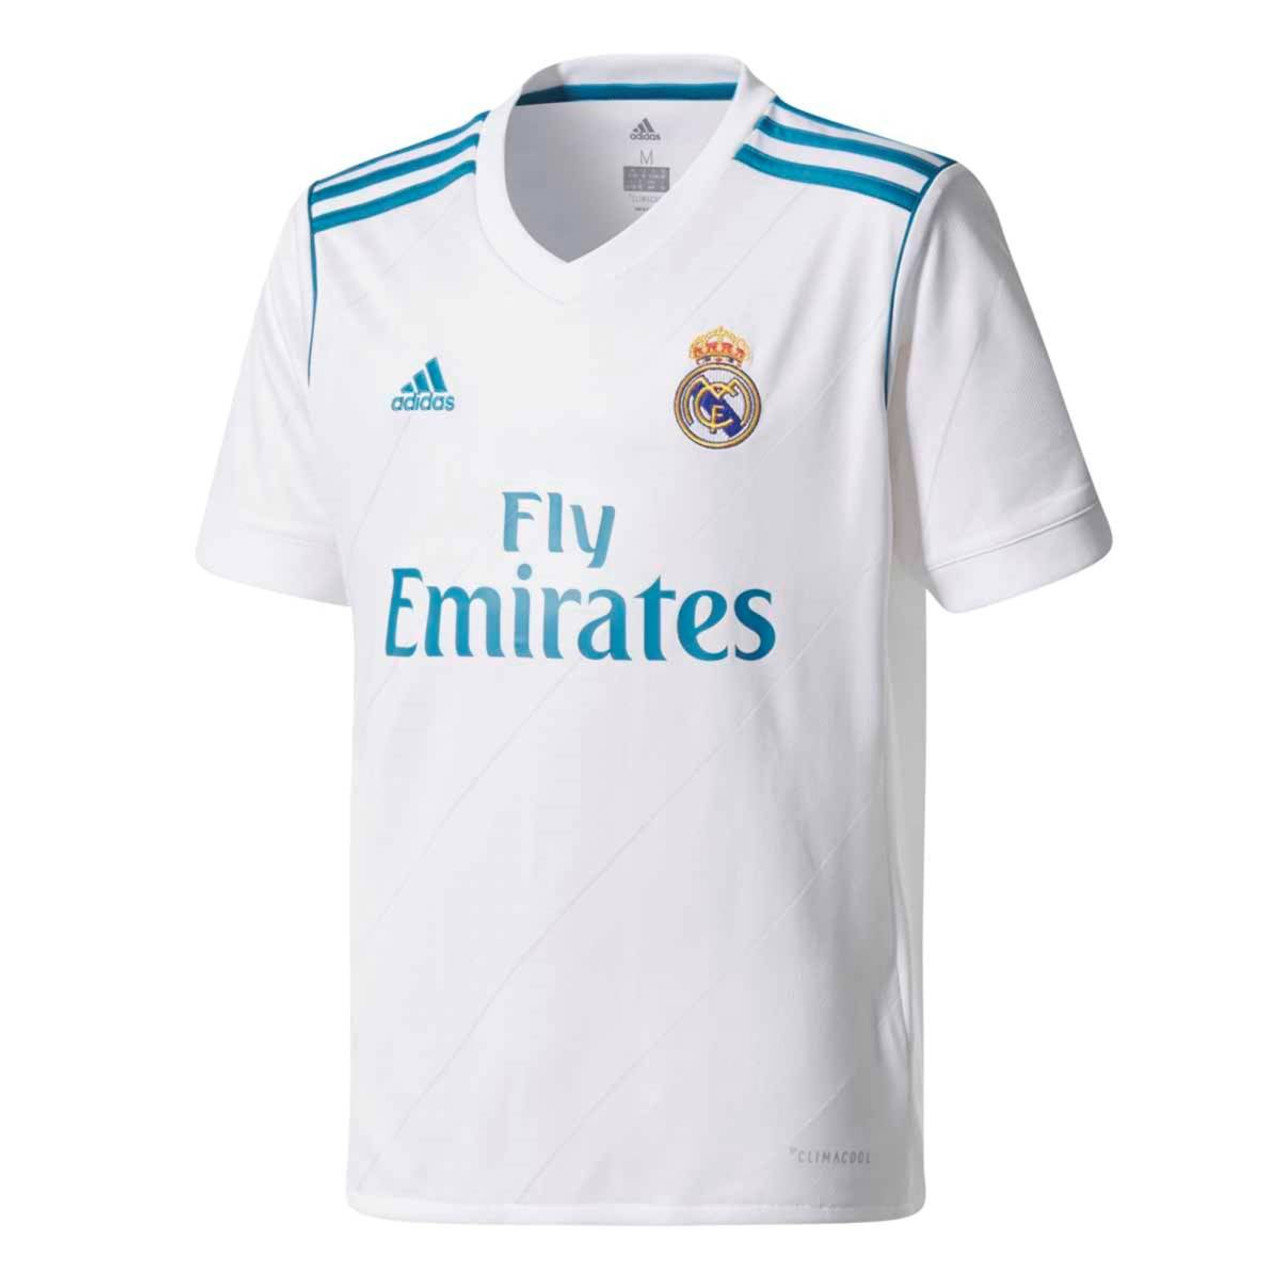 6fdcbd200ac Adidas Youth Real Madrid 2017-2018 Home Jersey - White SD (5518 ...